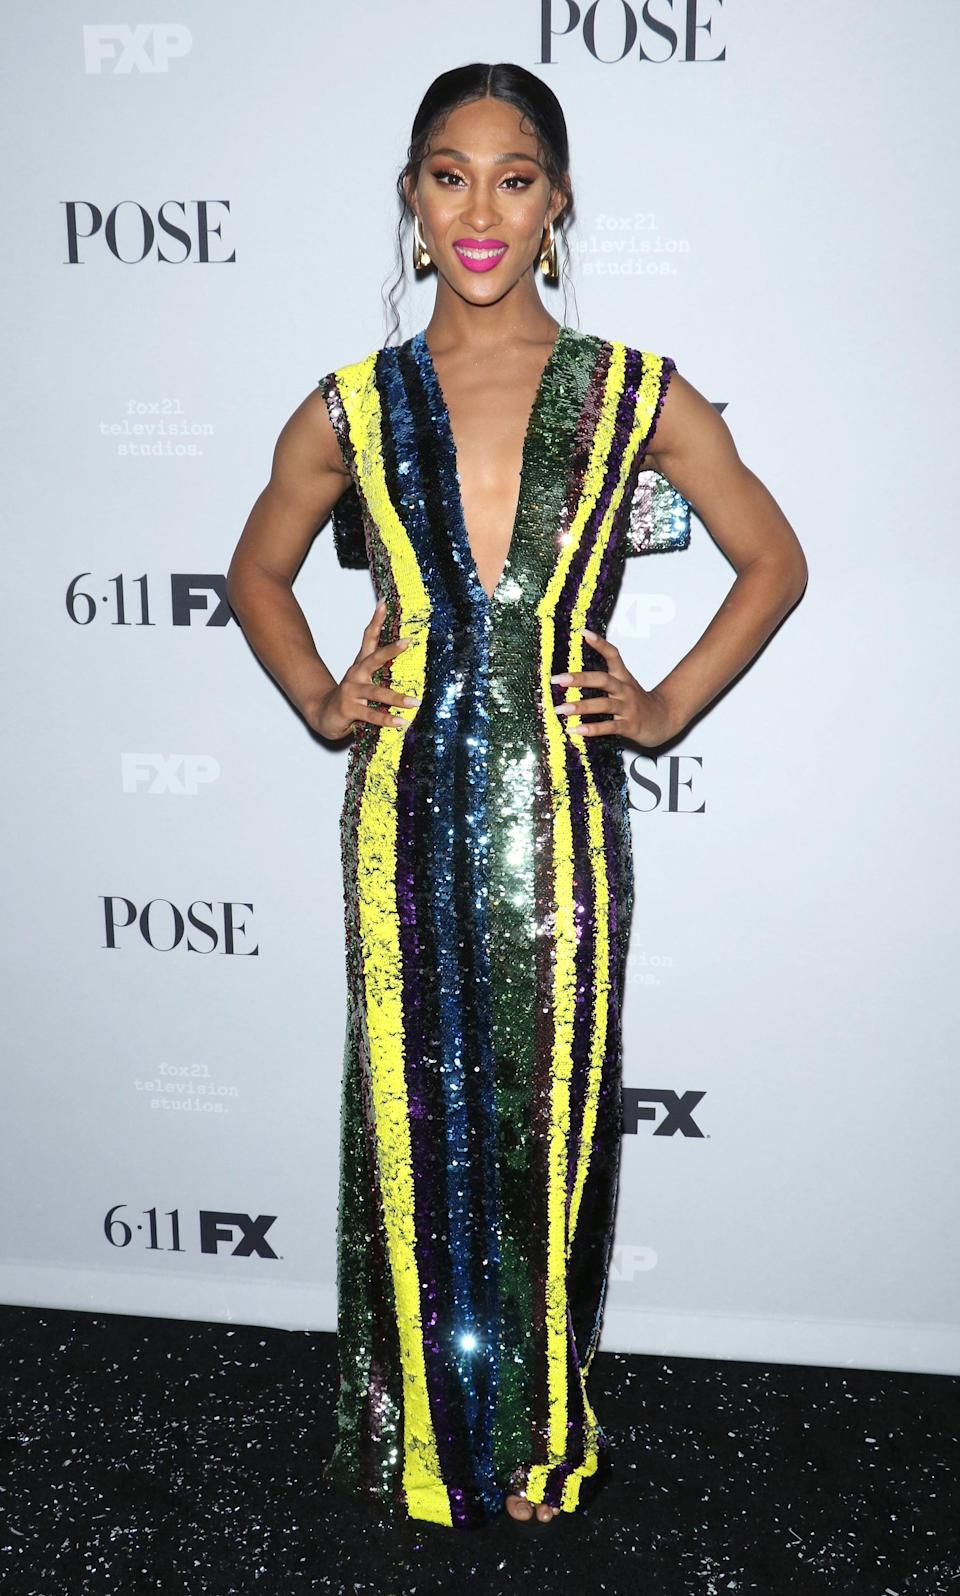 <p>Mj opted for all the sequins and statement earrings from Swati Dhanak at the <b>Pose</b> season two NYC premiere in 2019.</p>